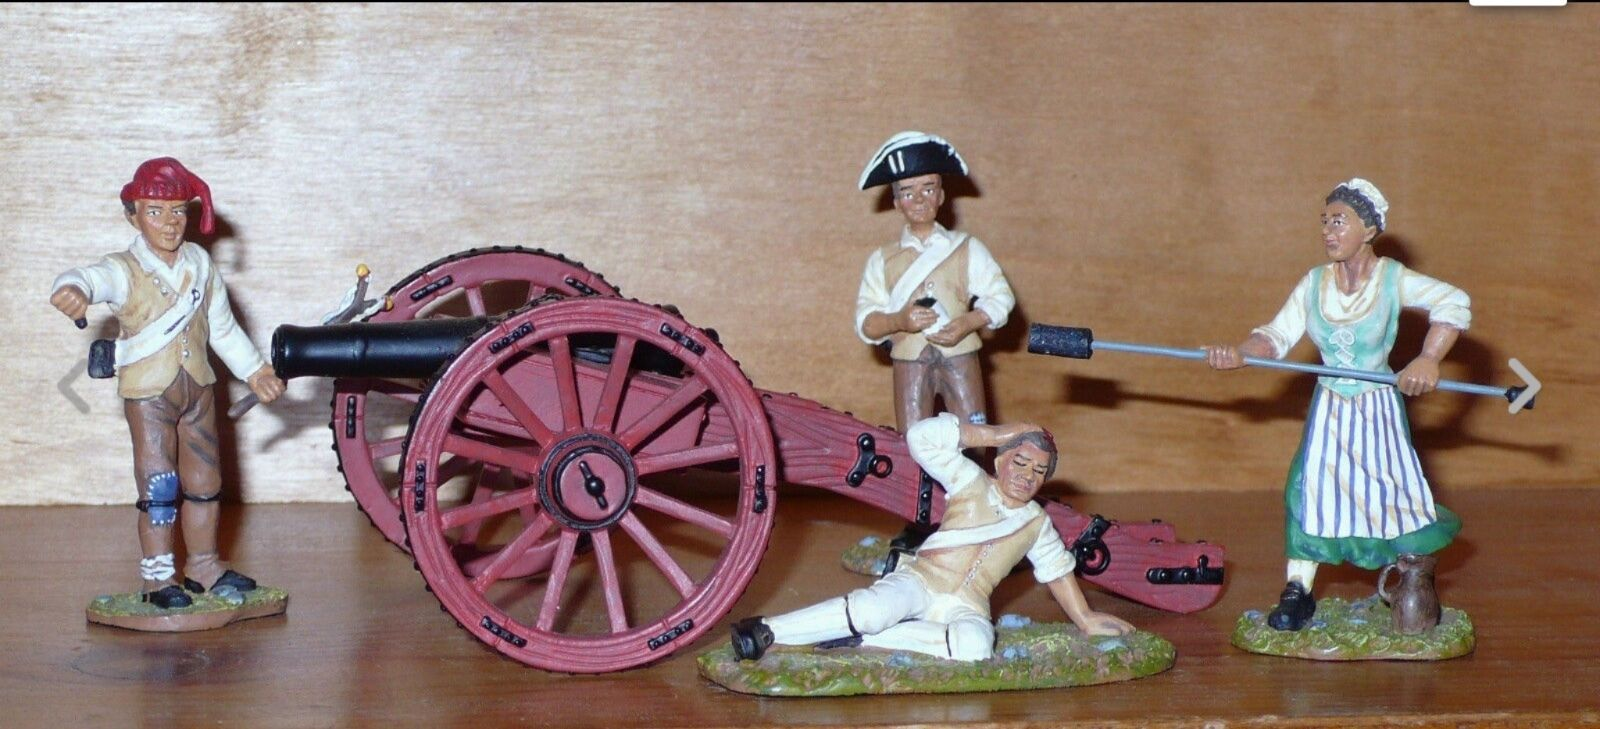 Britains  American Revolution 17451 MOLLY PITCHER SET w CANNON in Original Box